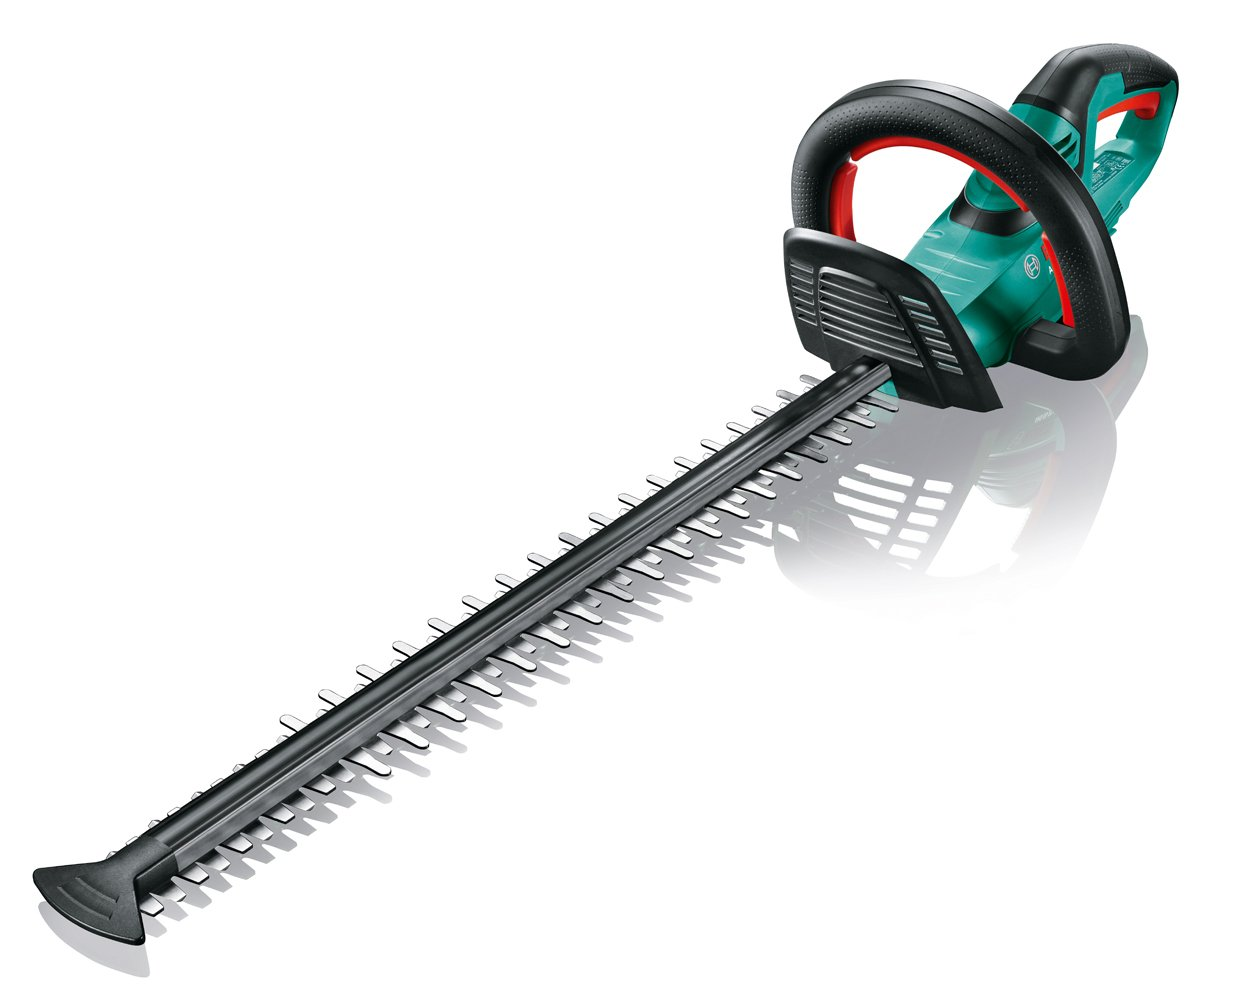 Bosch AHS 55-20 LI Cordless Hedge Cutter Without Battery and Charger, 550 mm Blade Length, 20 mm Tooth Opening 0600849G02